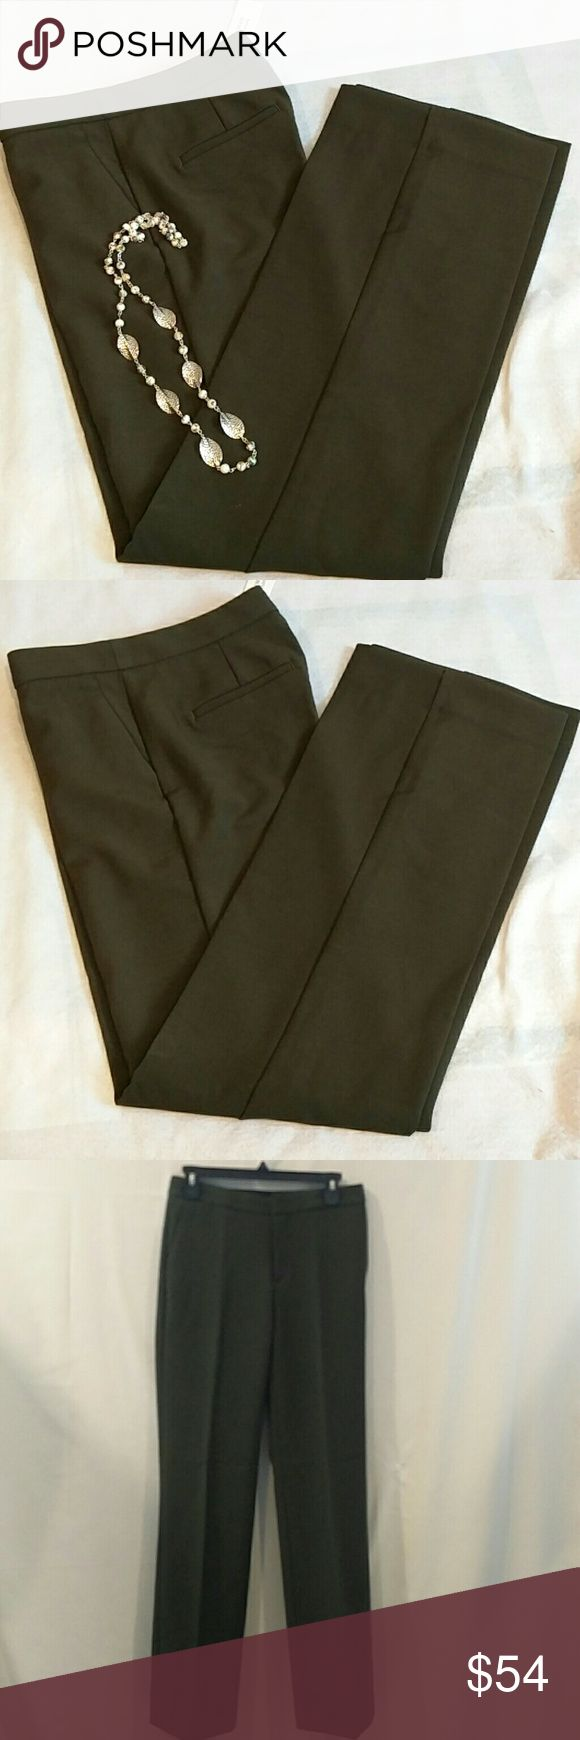 """Banana Republic Straight Trouser Pant Size 4 4 You are looking at a new with tag Banana Republic Women's Straight Trouser. Size 4, high rise, straight fit through the hip and Thigh, straight leg. Olive green color, 79% Polyester, 15% Viscose 6% Spandex, made in Bangladesh. Heavy material.  Length~ 42"""" Inseam~33"""" Waist~39"""" Please look at pictures and ask questions before buying. Thanks for looking. Banana Republic Pants Trousers"""